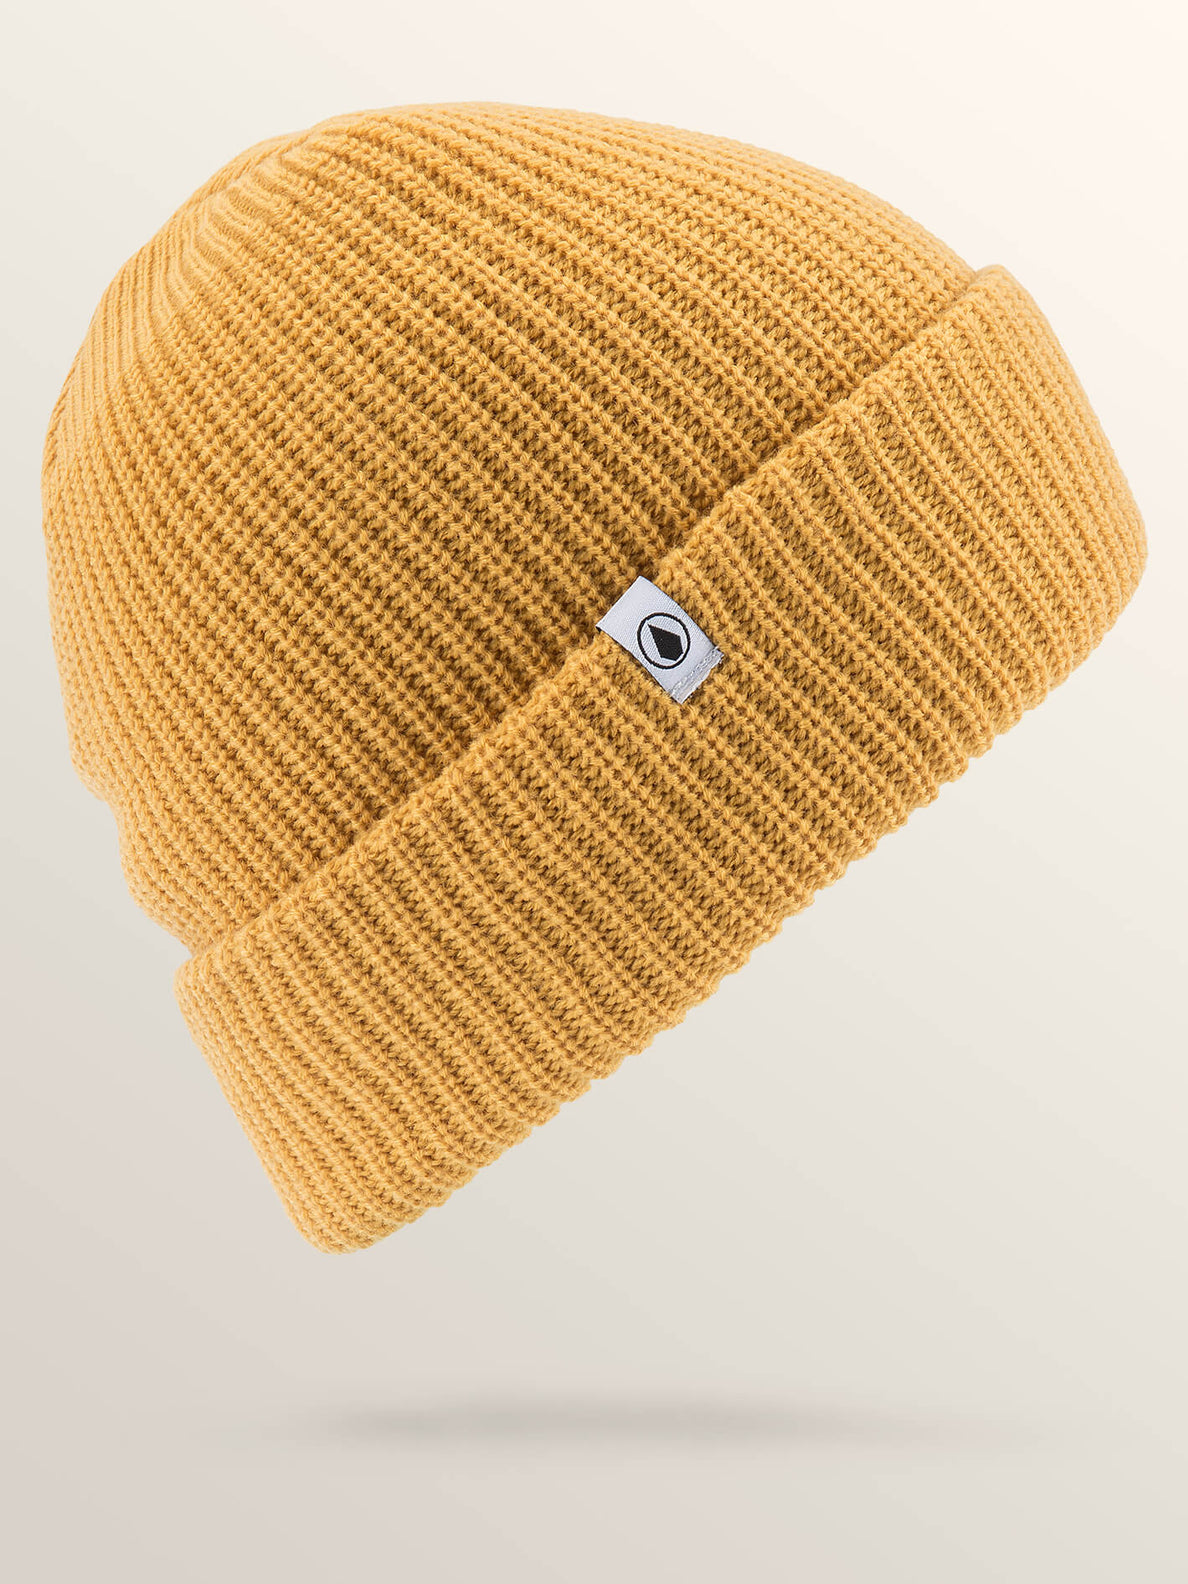 Naval Beanie In Seedy Yellow, Front View